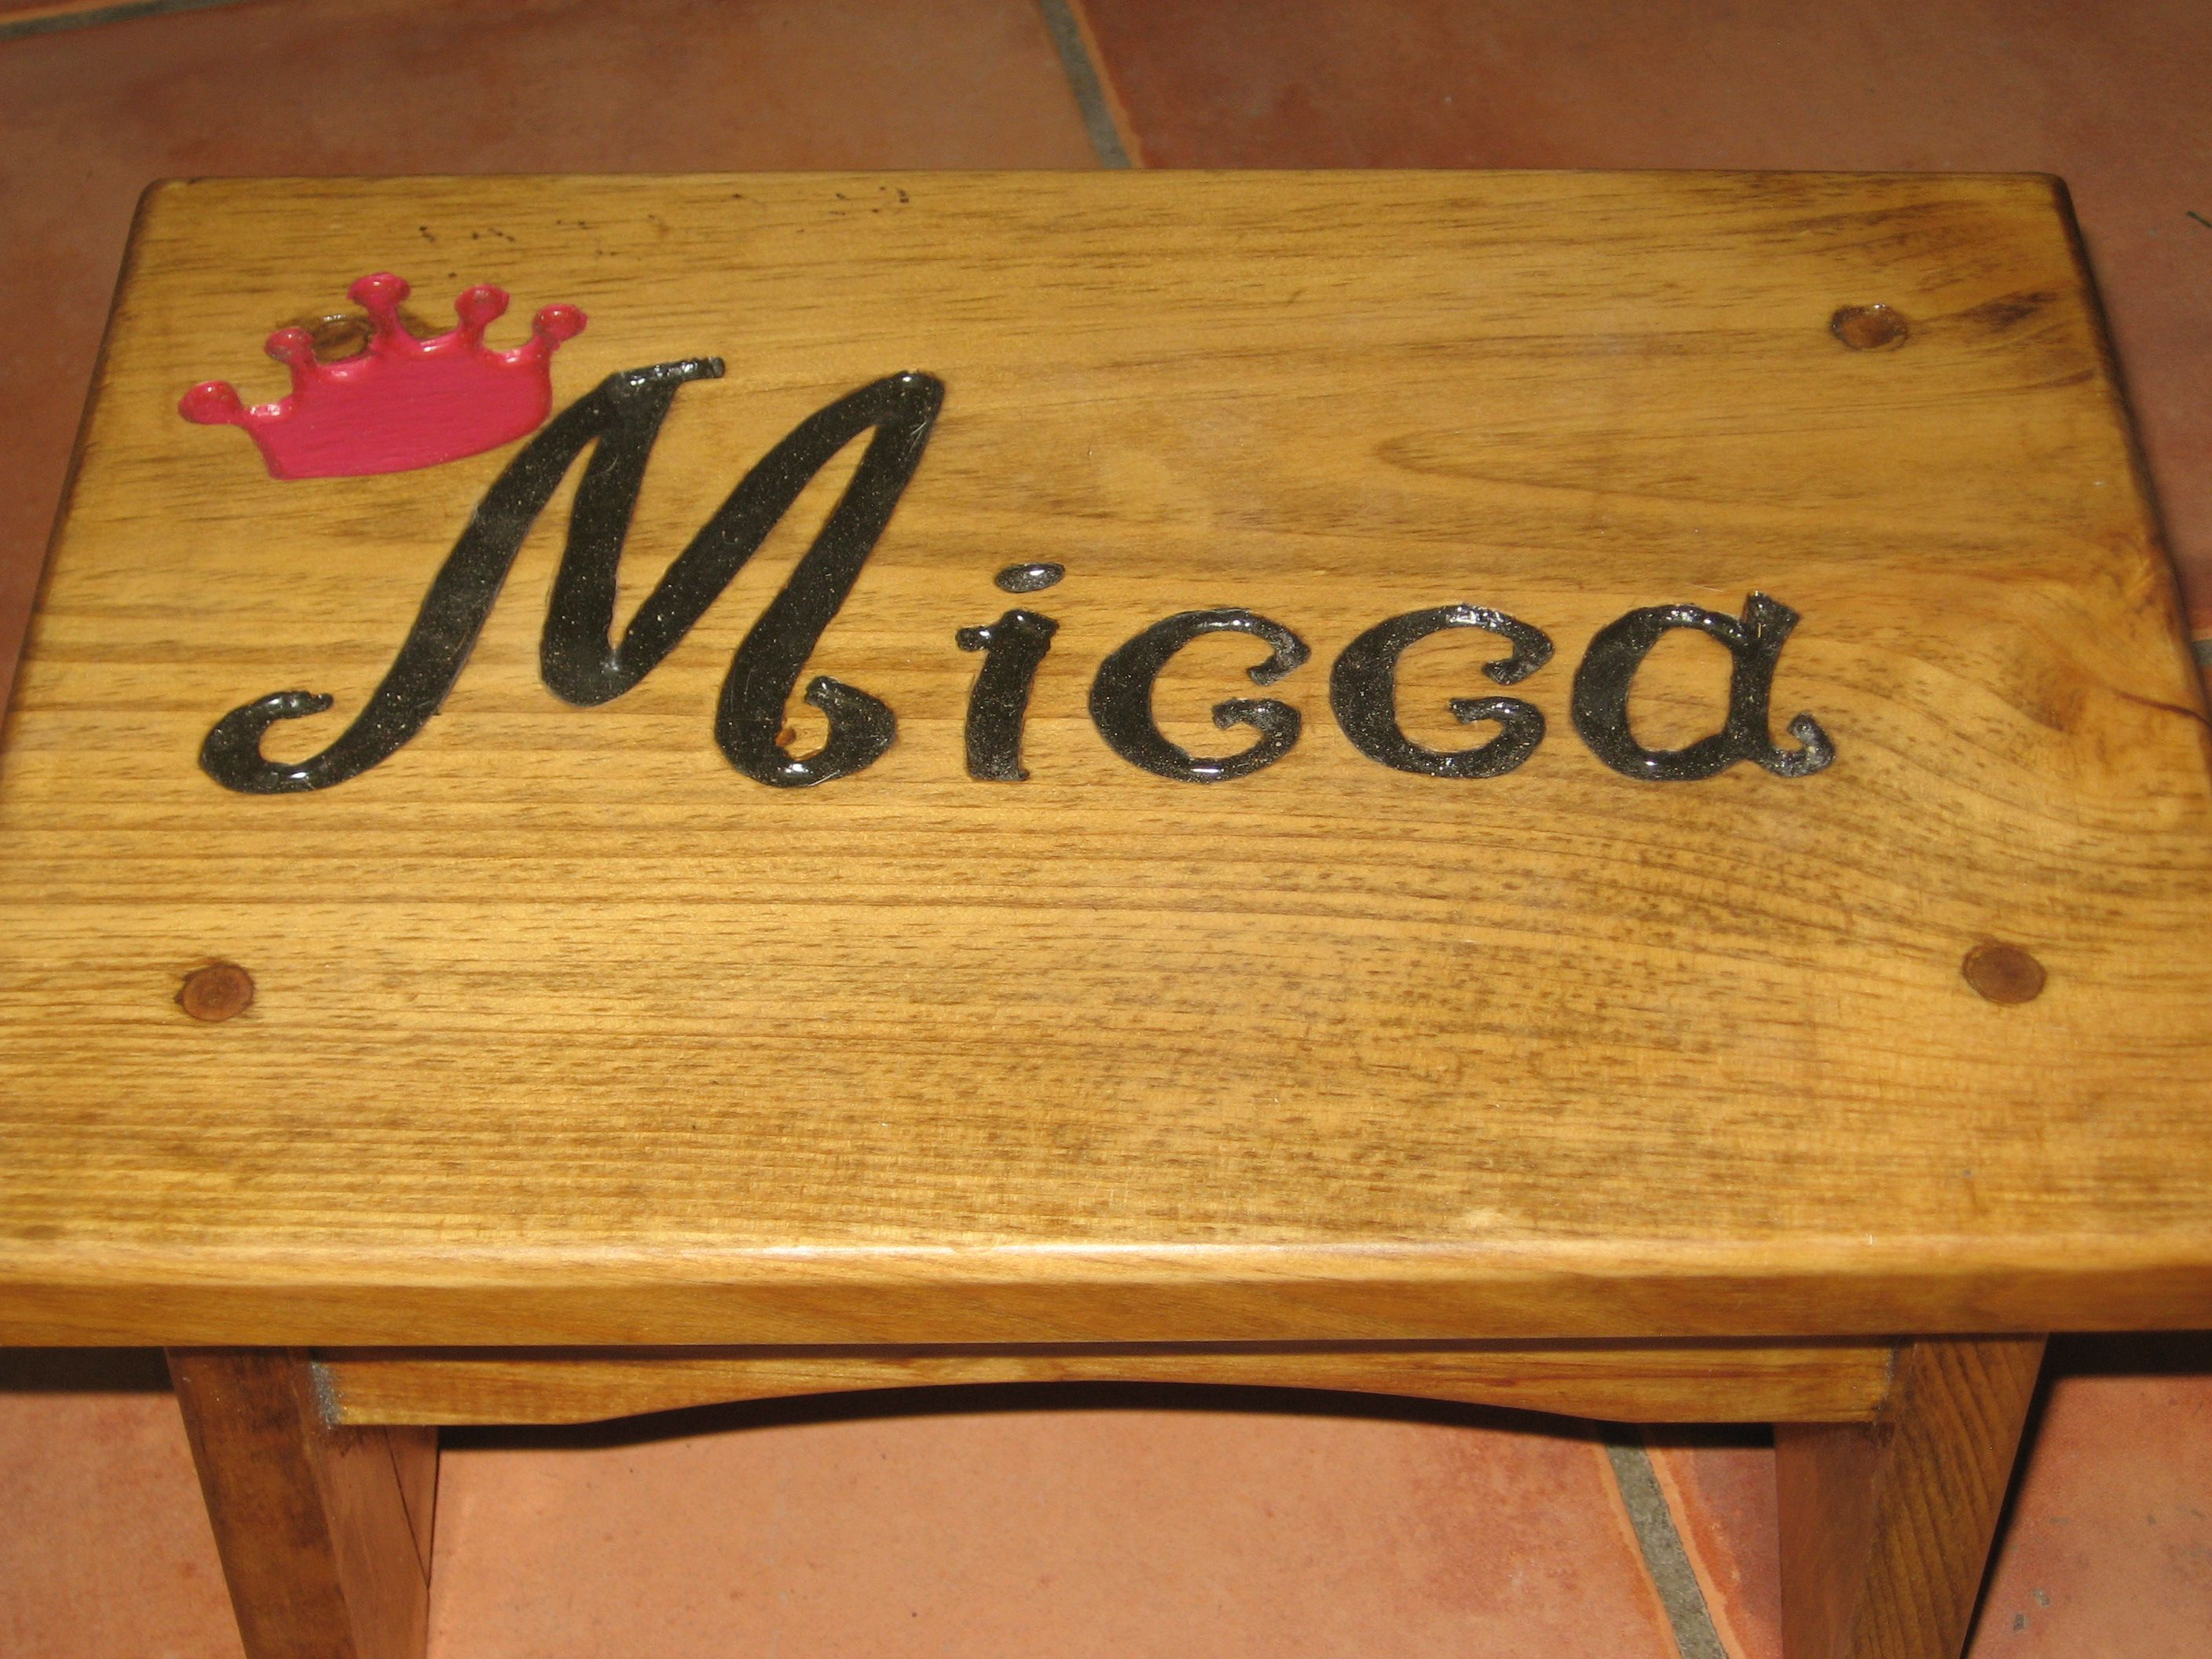 engraved a stepstool by making a stencil and carving out the letters with a dremel tool